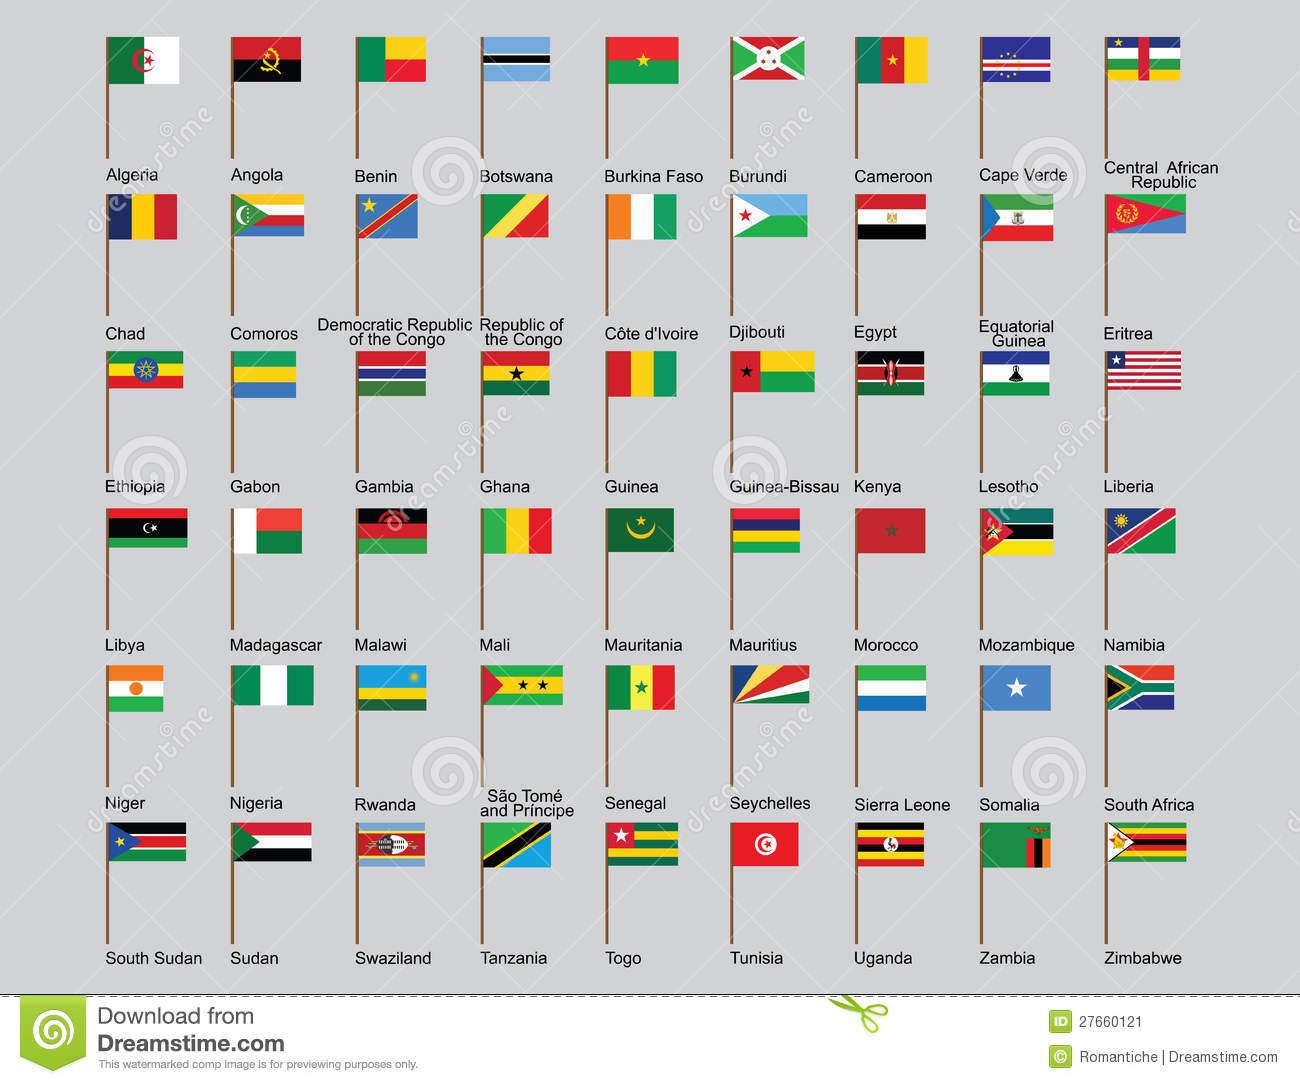 Flags of All Countries - theodora.com